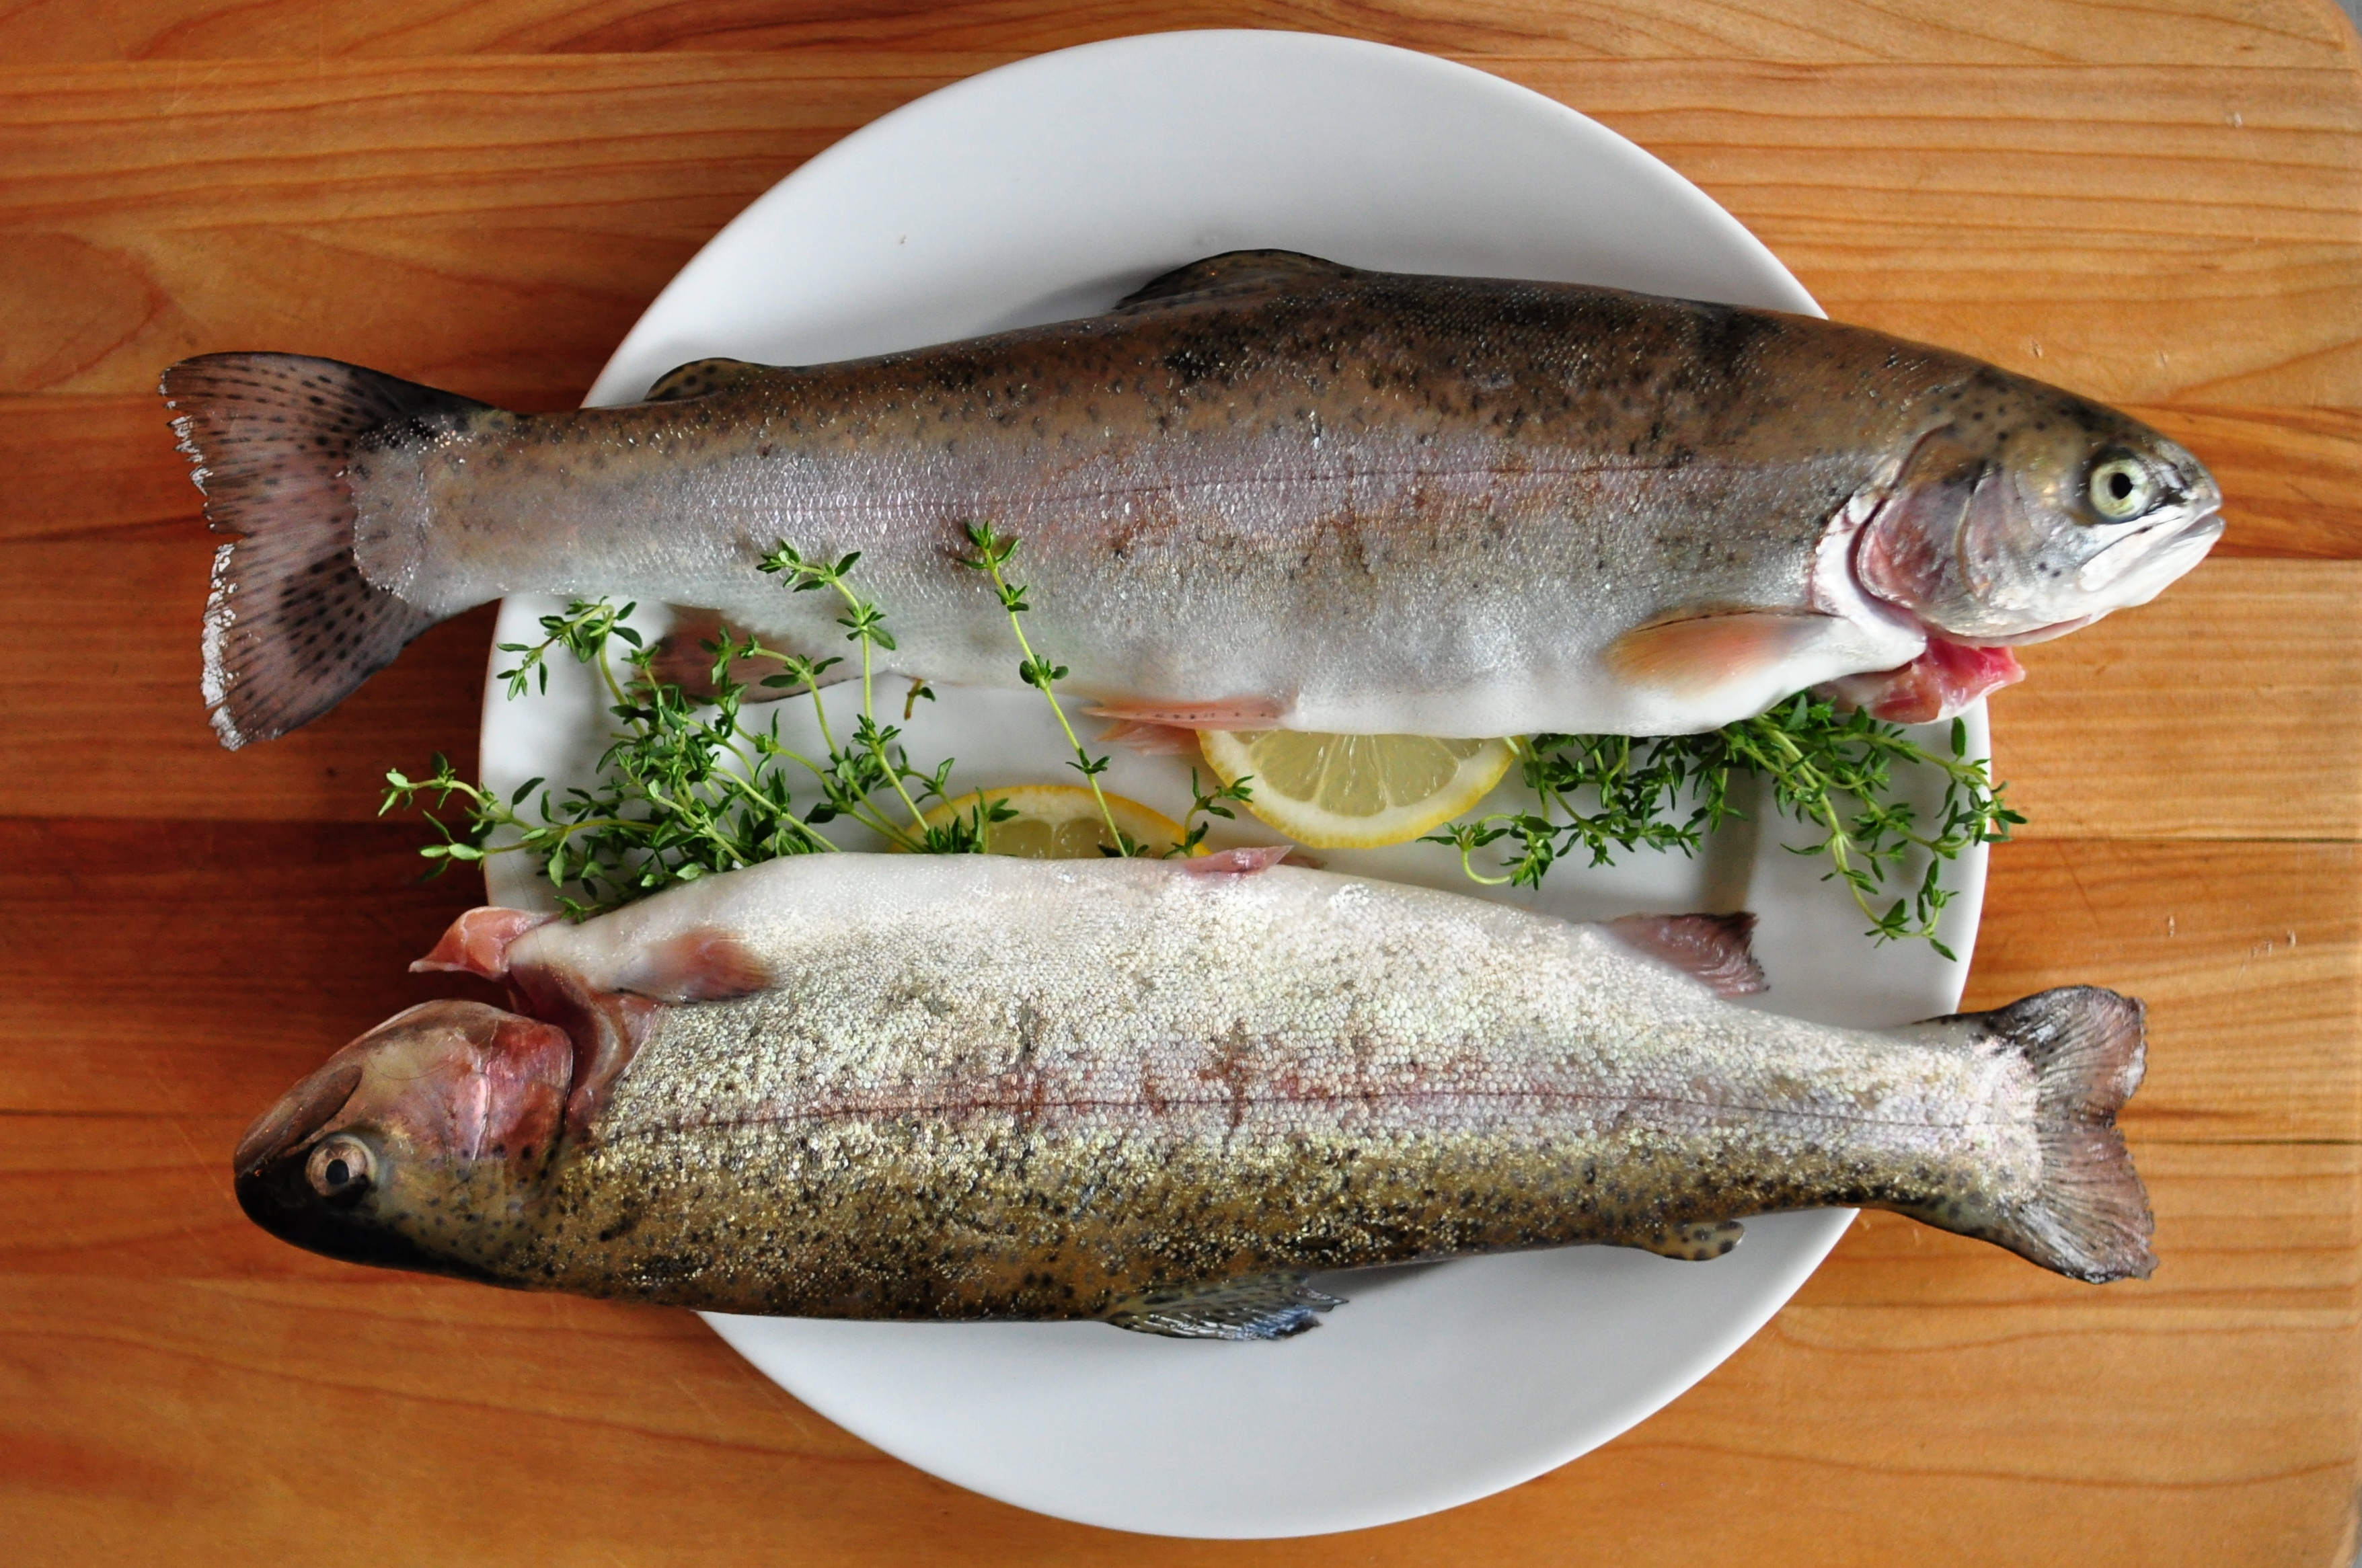 Top 6 Fish For Weight Loss (With Diet Chart)